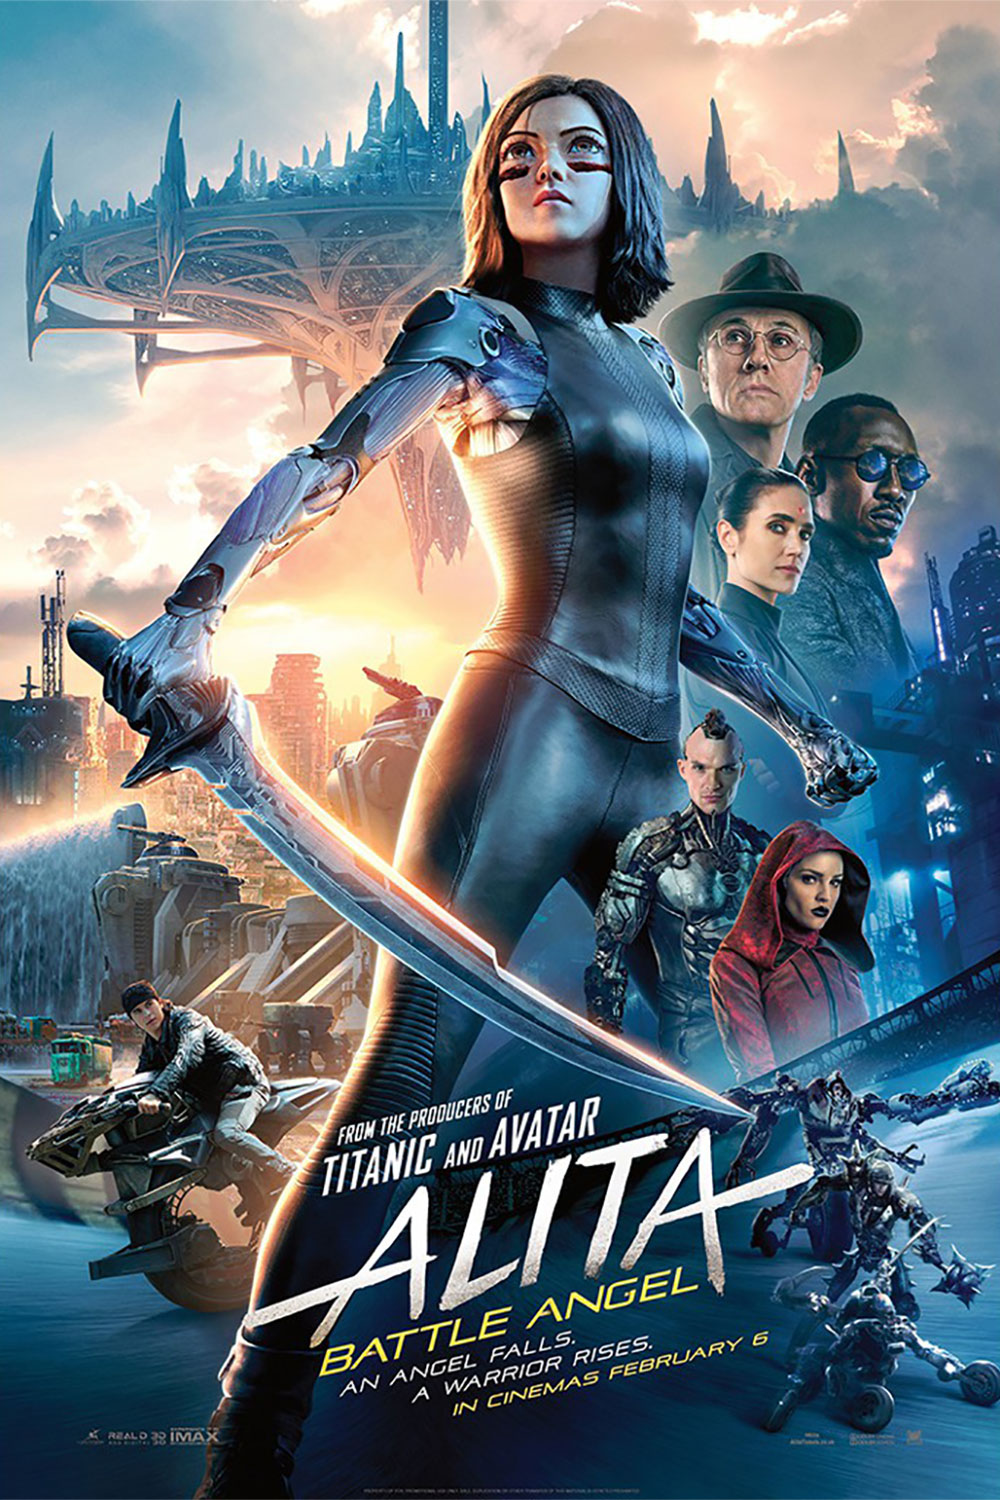 Alita, Battle Angel (2019)